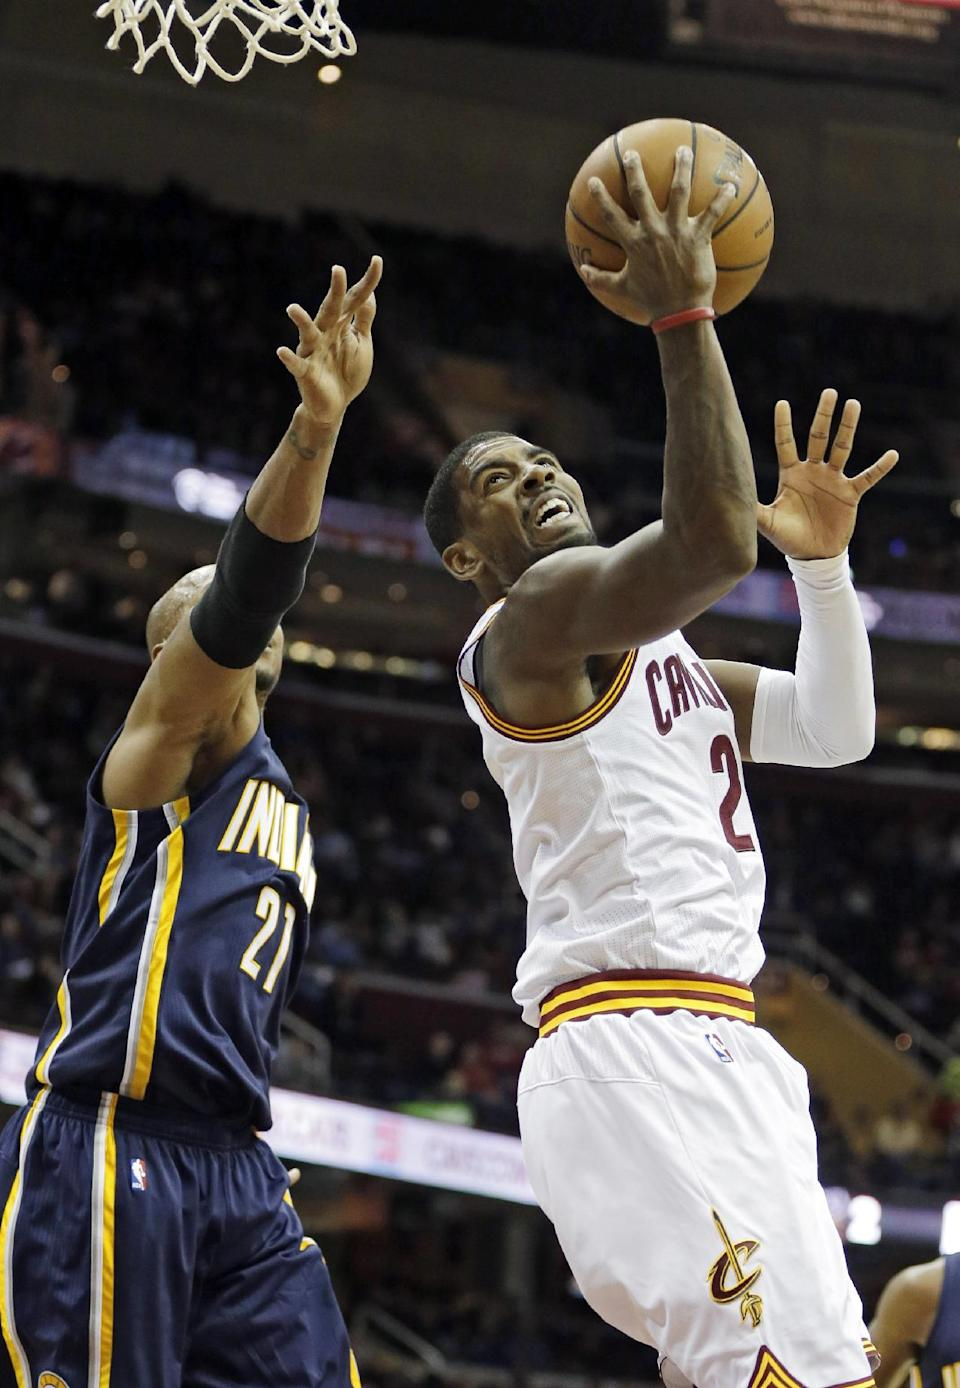 Pacers beat Cavs for first preseason win